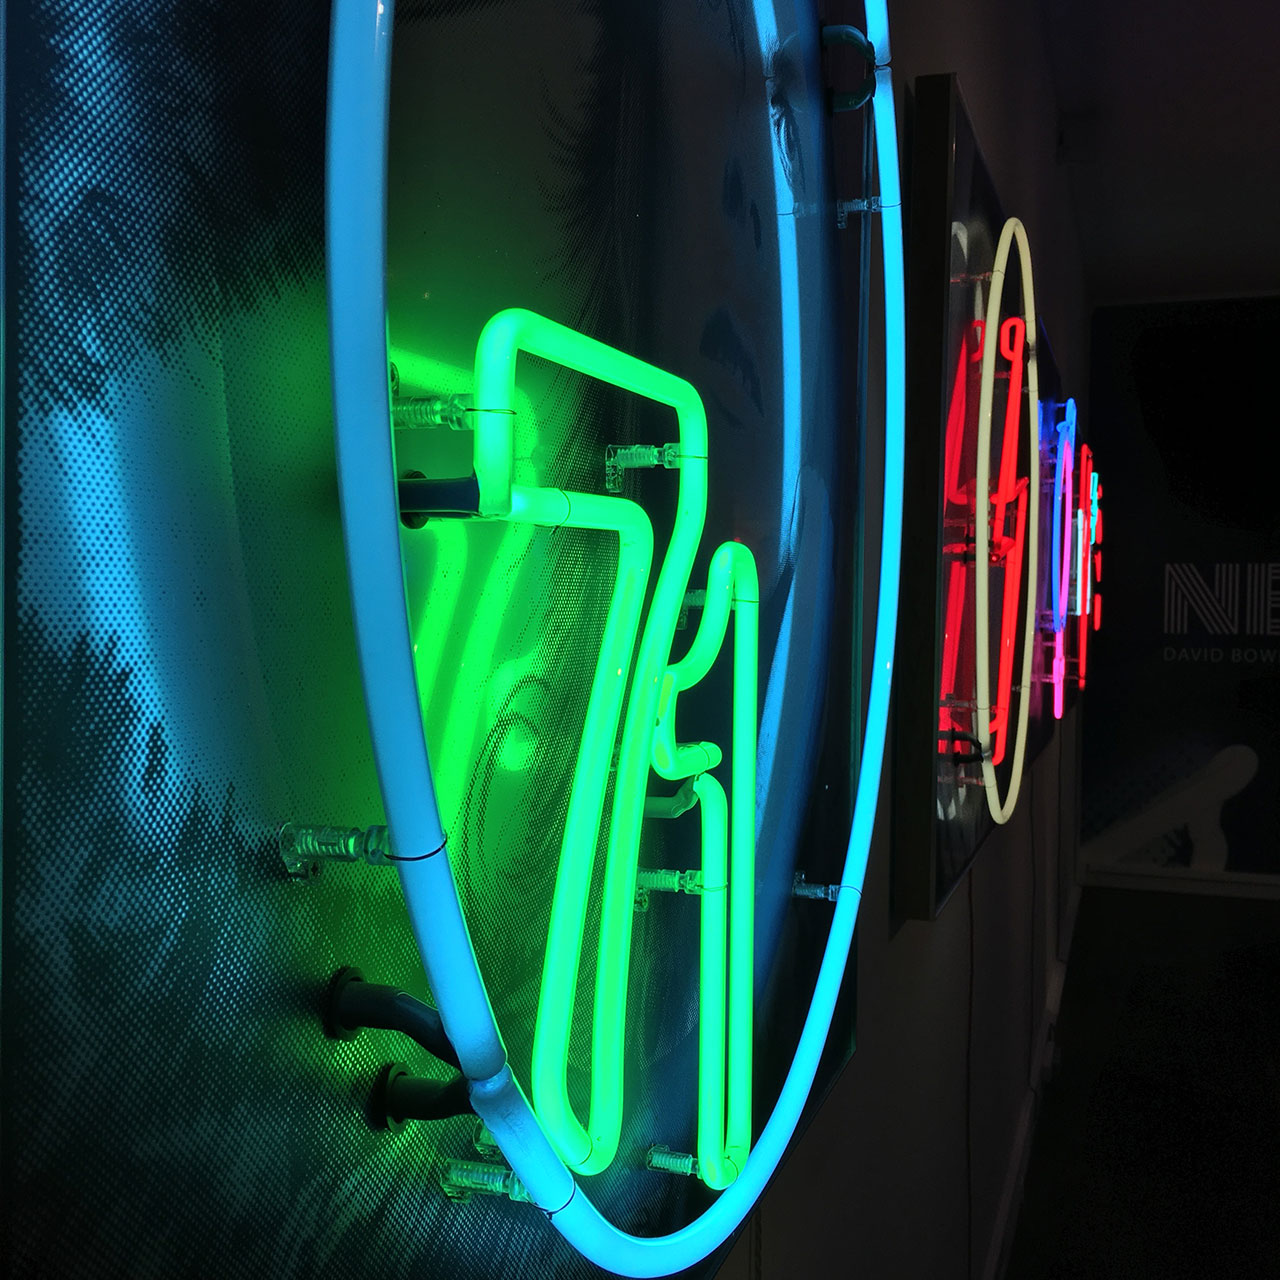 Photo © Louis Sidoli Neon Artist.